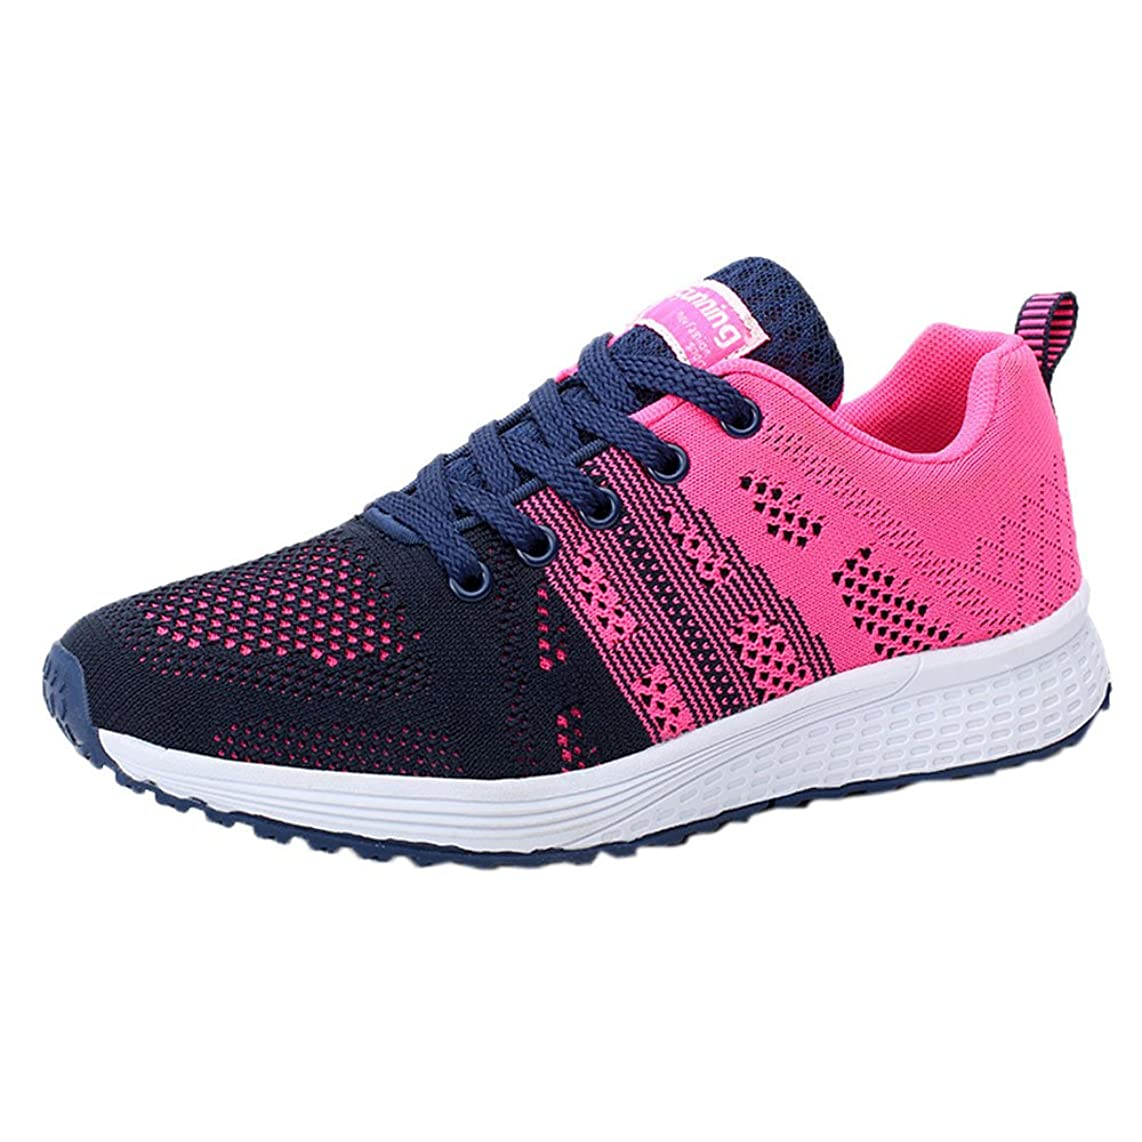 Women Running Sneakers ?Lady Casual Lightweight Gym Yoga Sport Shoes Outdoor Walking Shoes